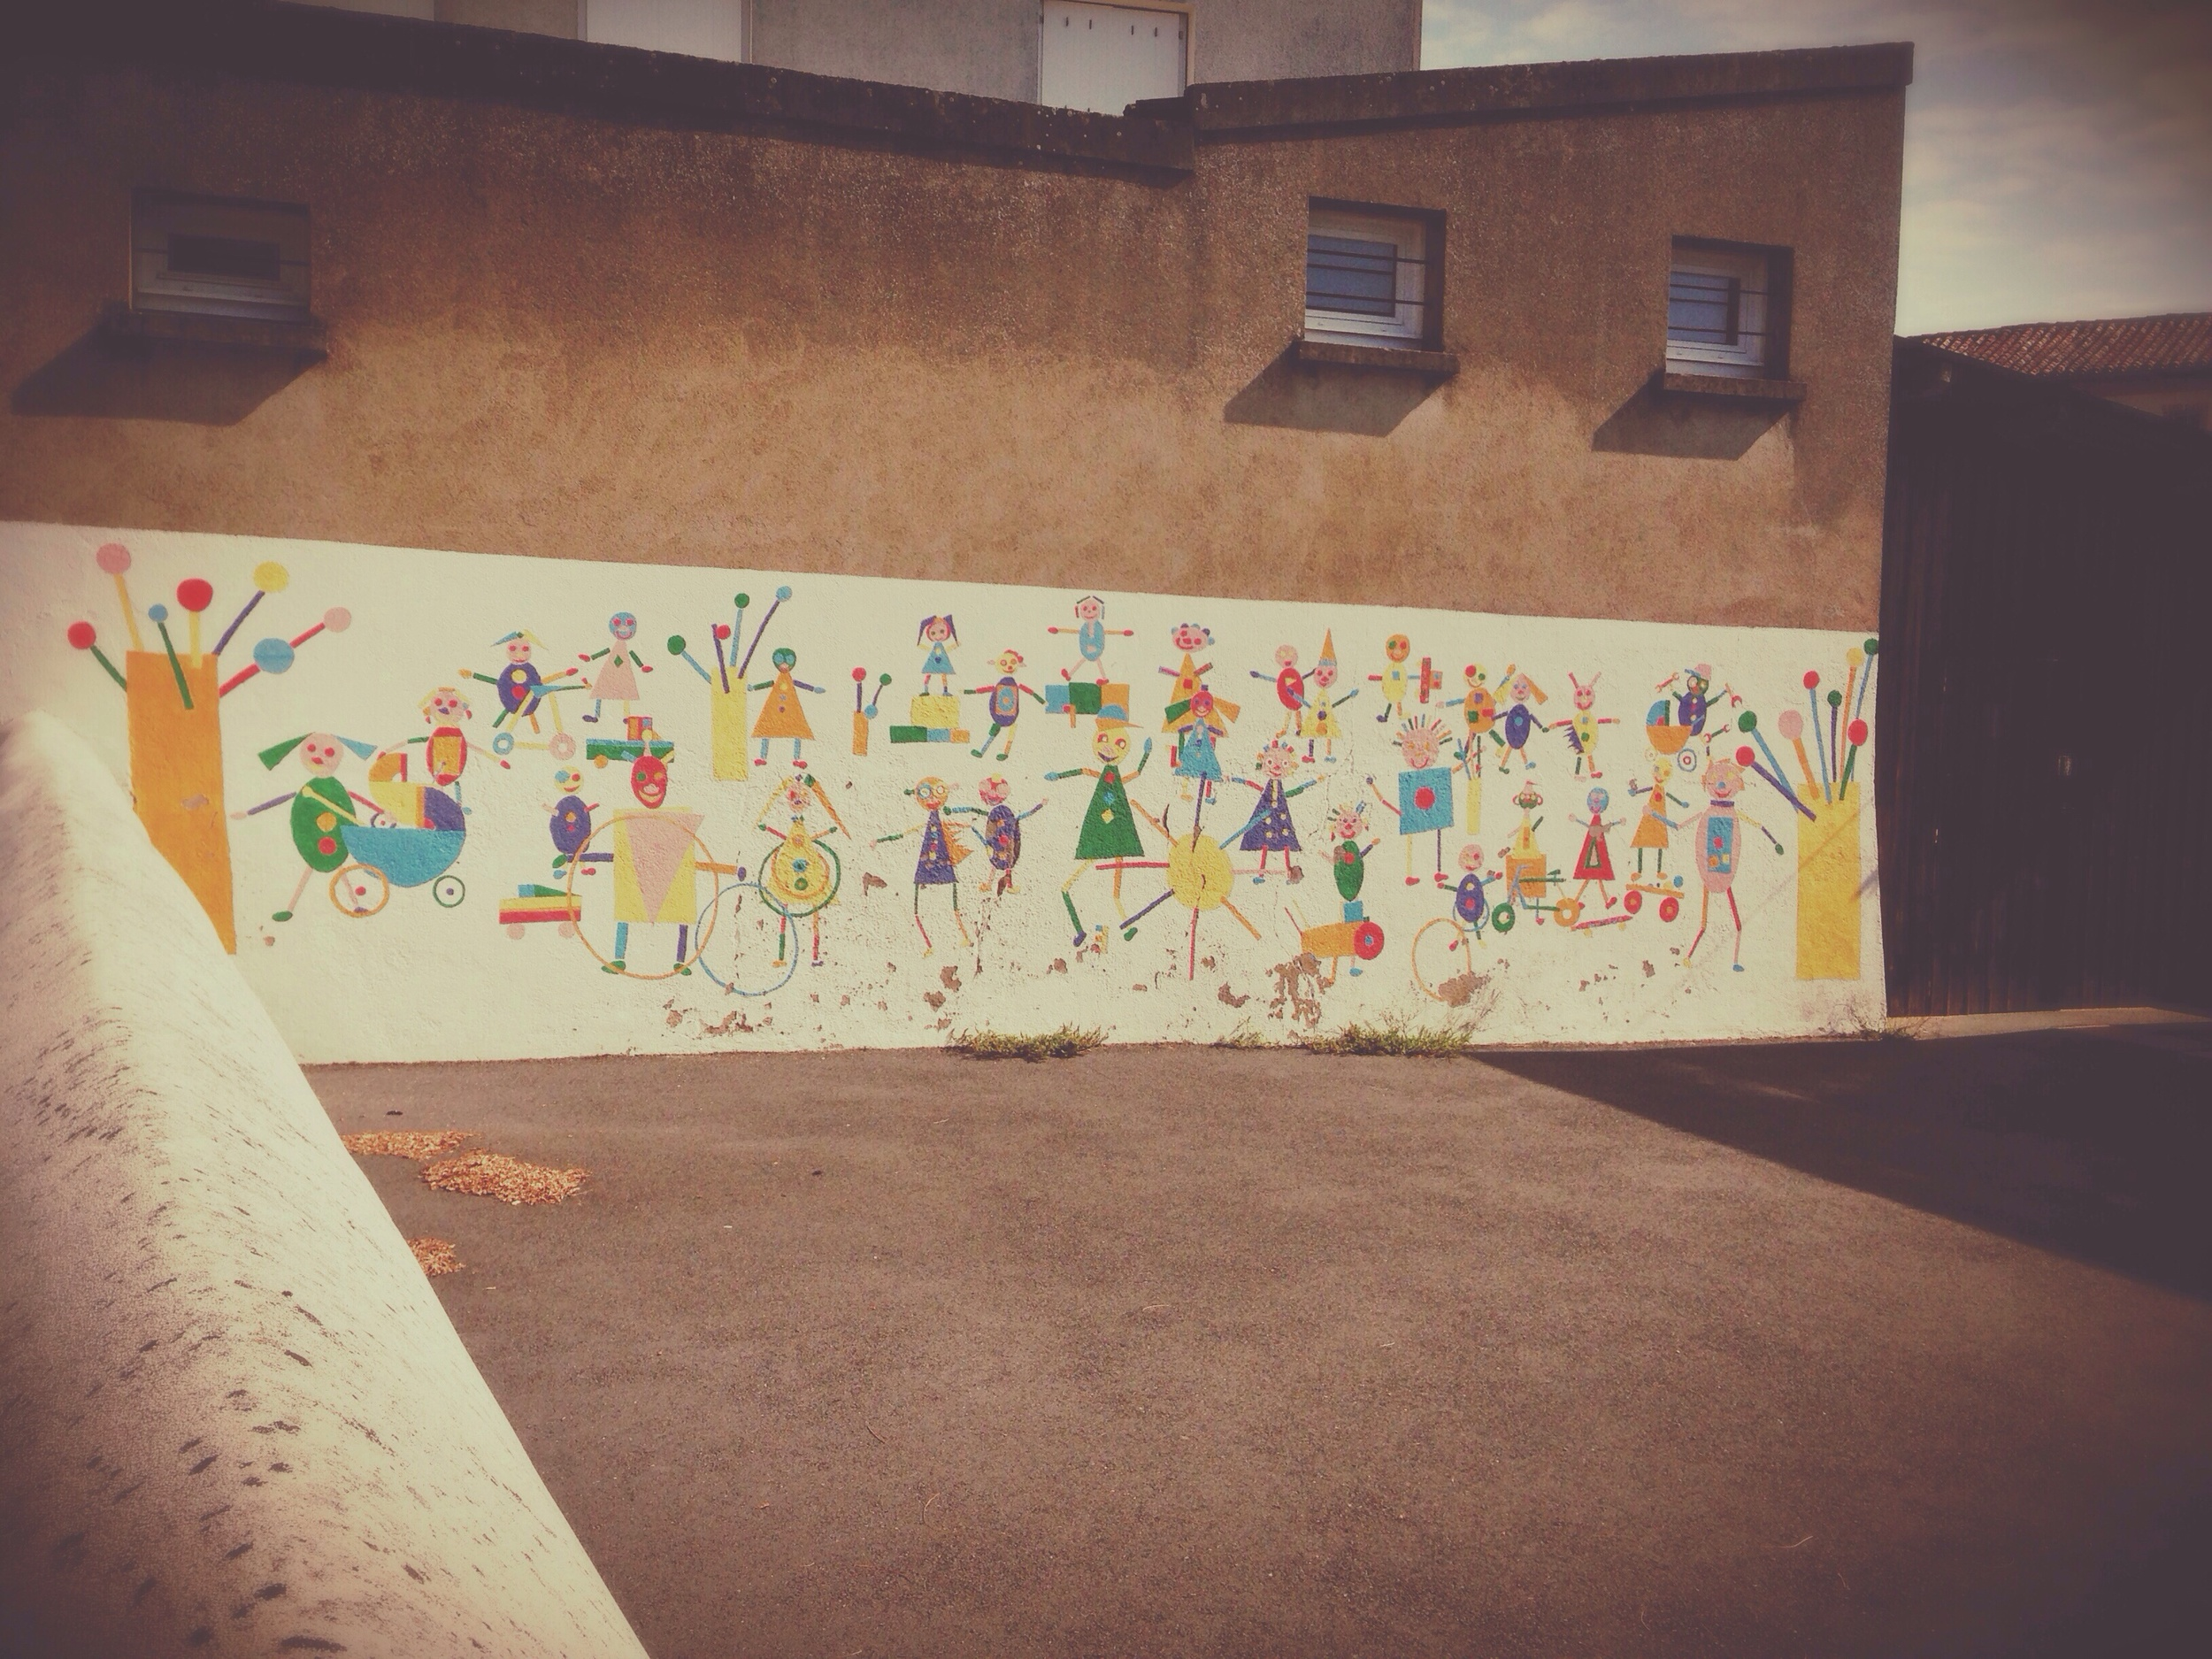 Preschool concrete yard with mural.